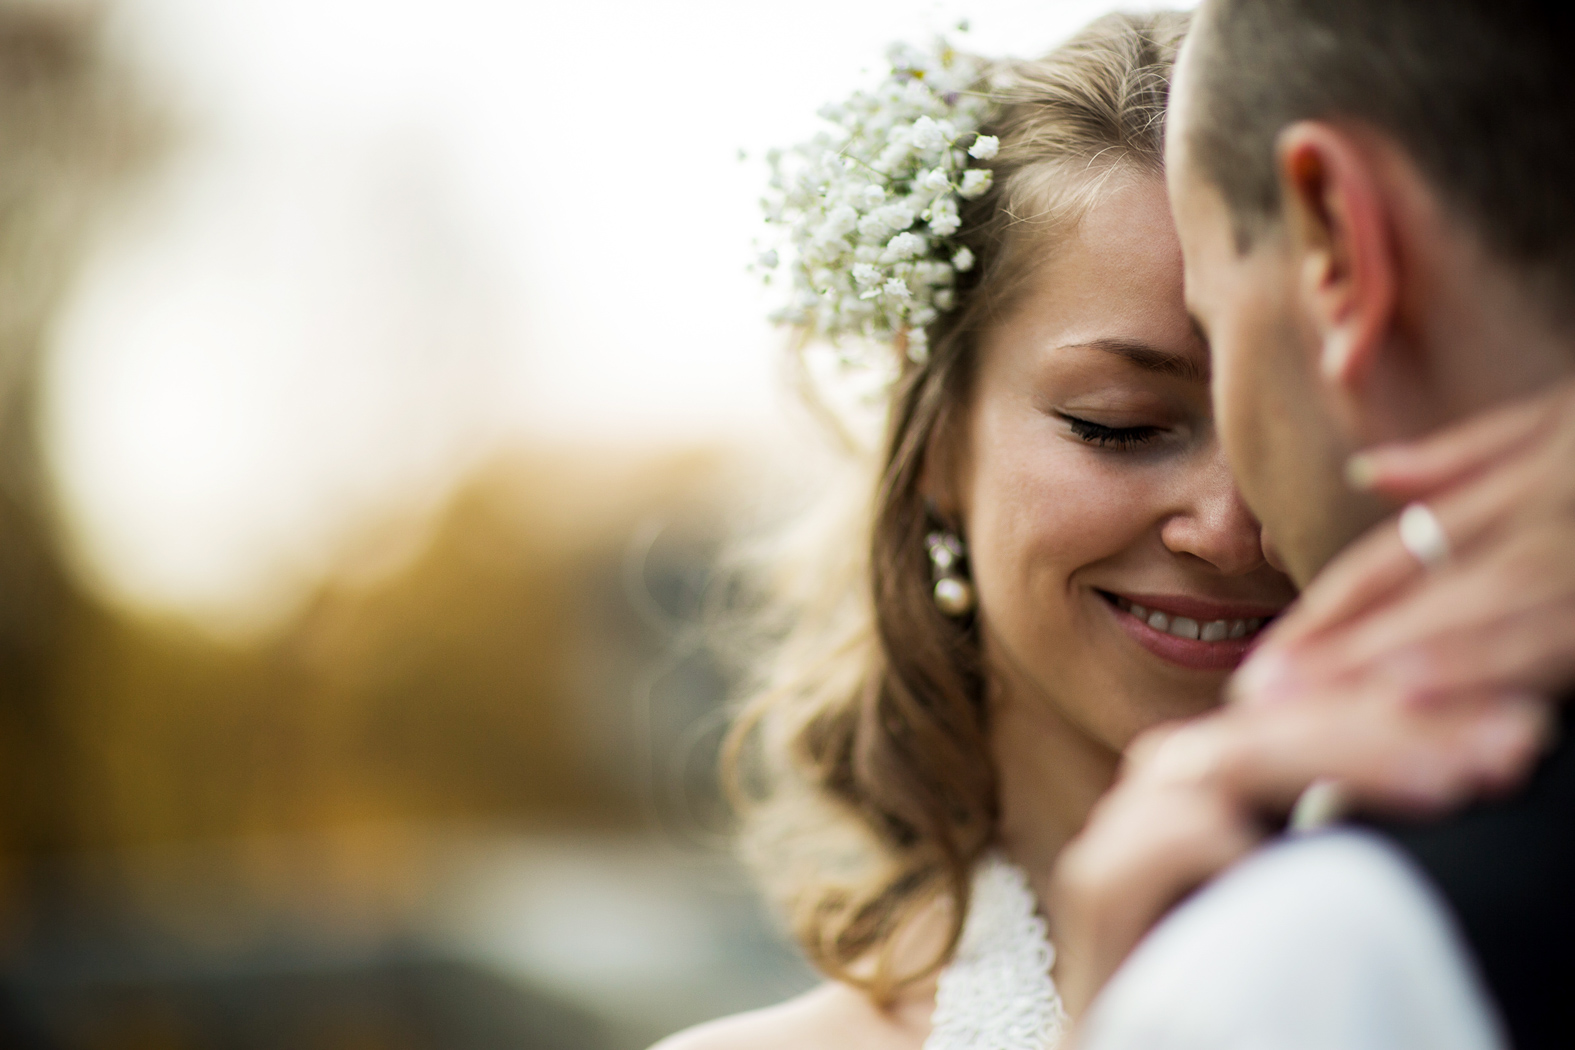 Bride & groom touching foreheads